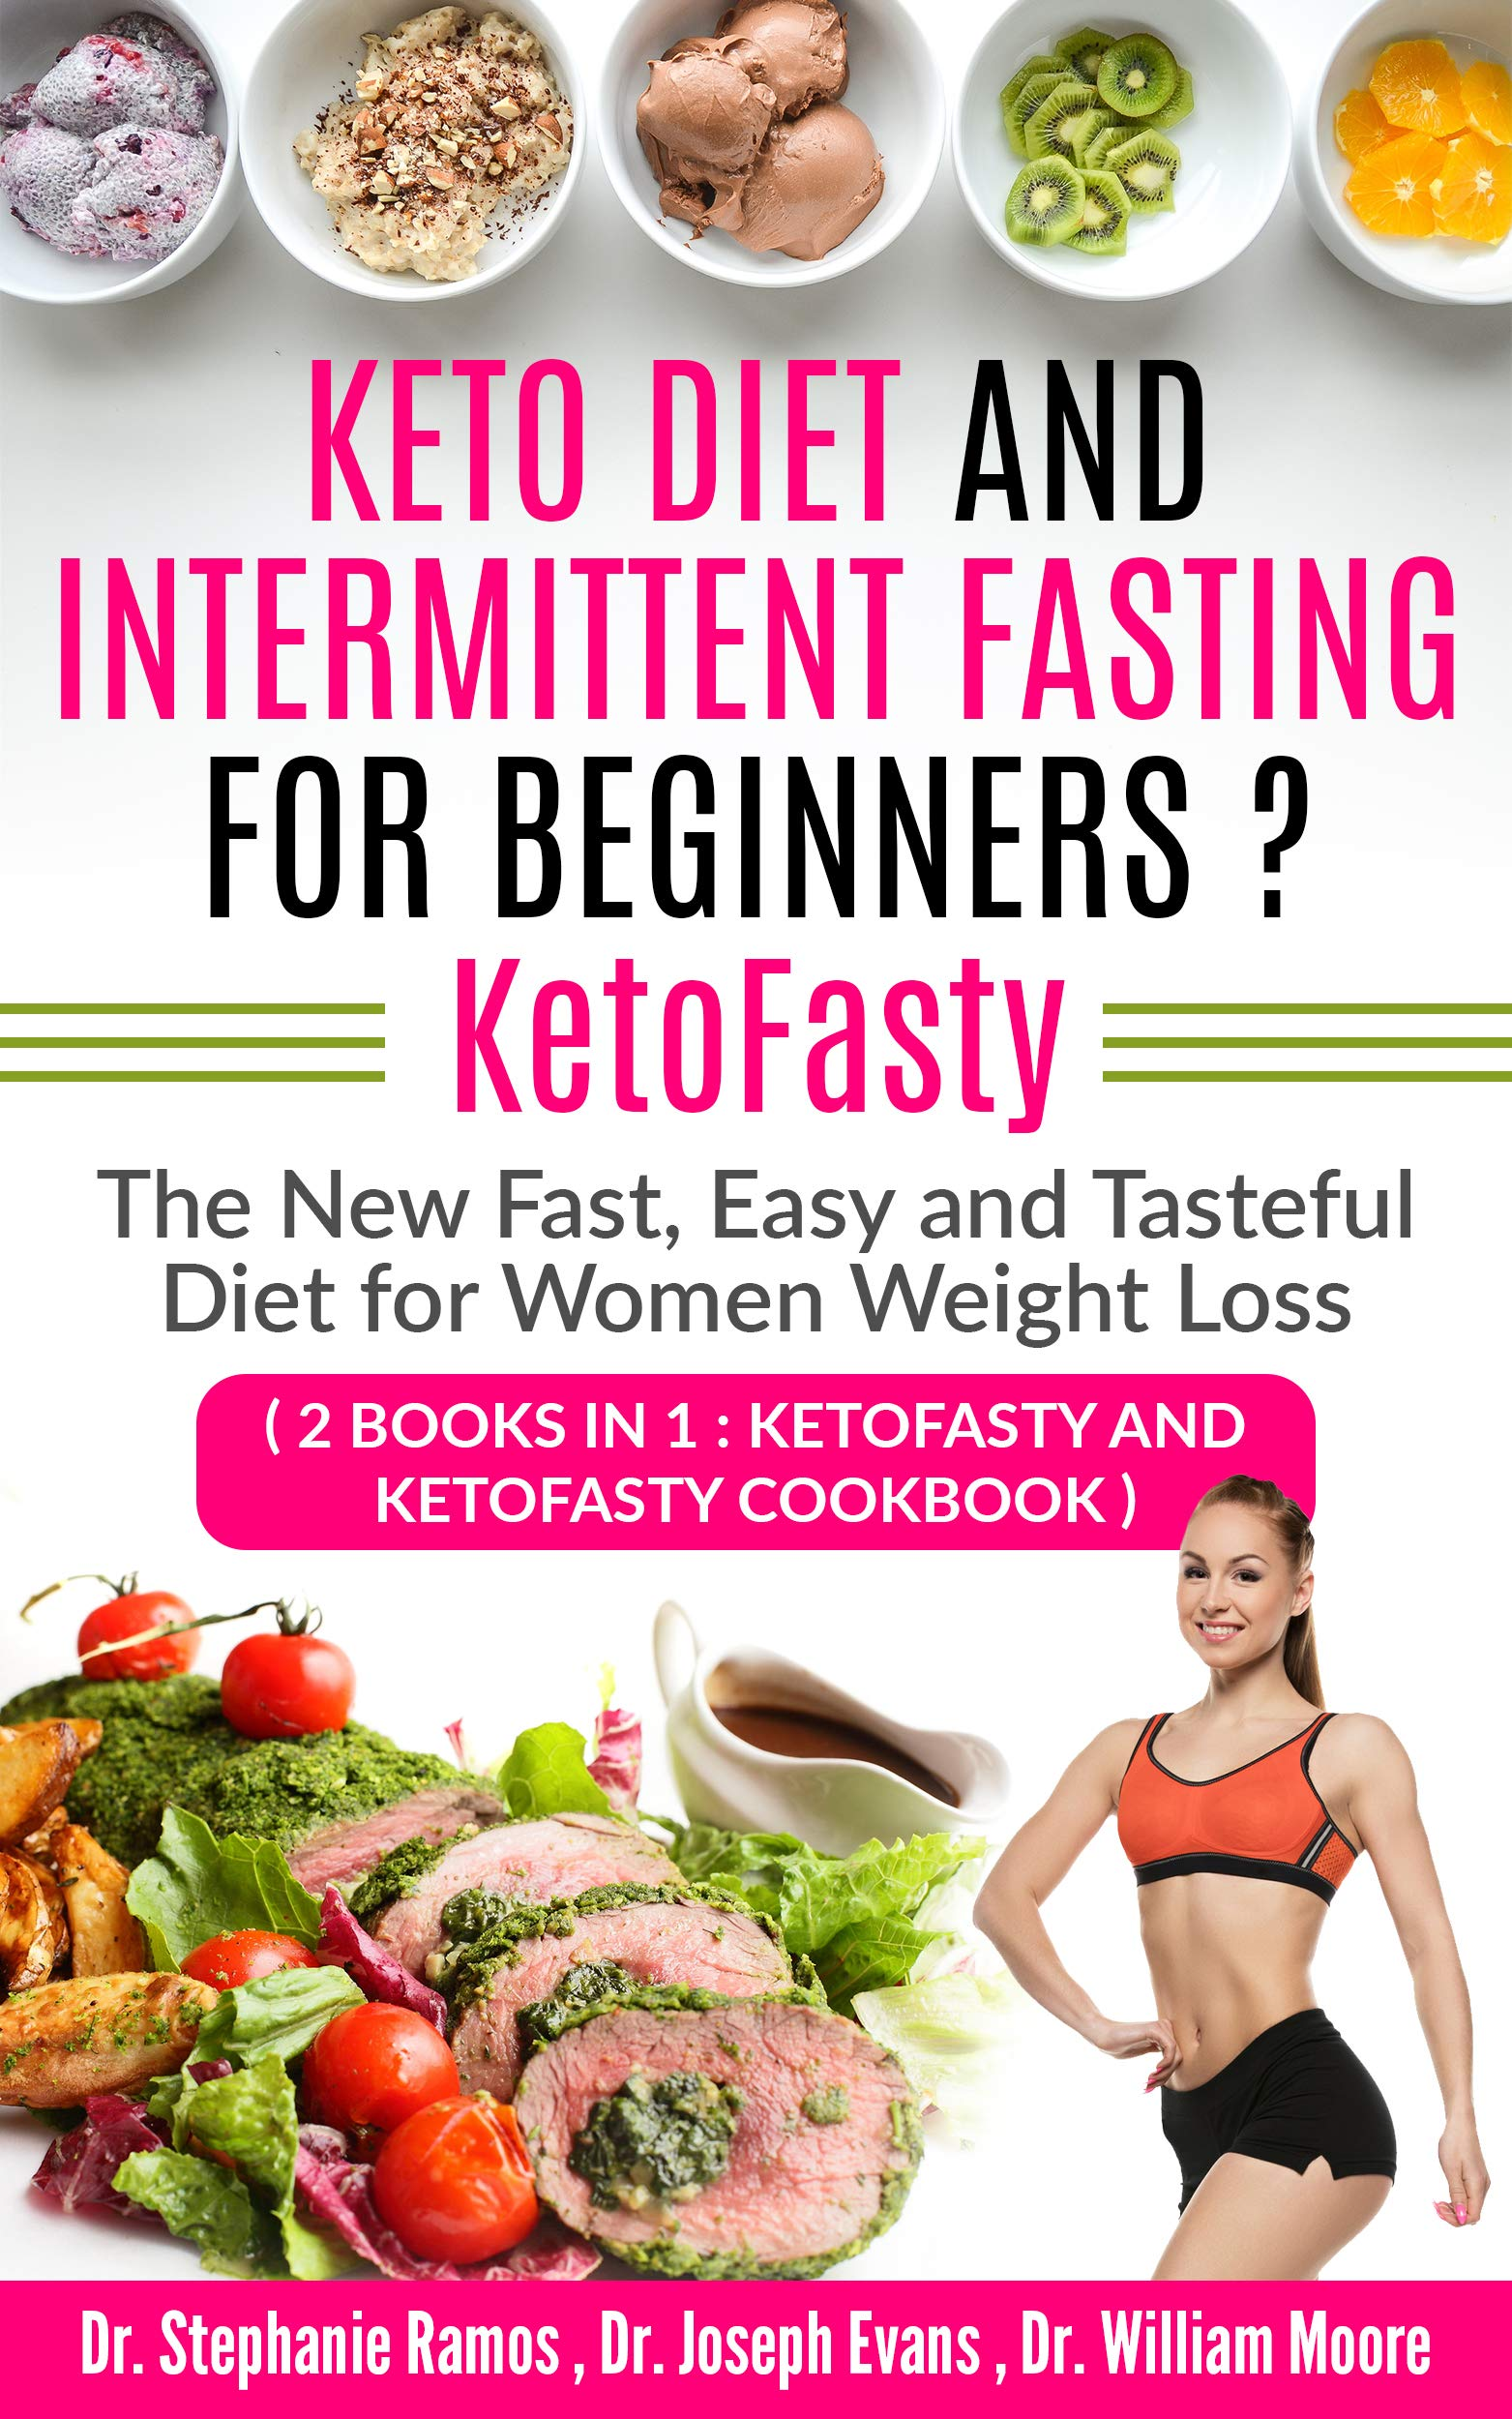 Keto Diet and Intermittent Fasting for Beginners ? KetoFasty: The New Fast Easy and Tasteful Diet for Women Weight Loss (2 Books in 1: KetoFasty and KetoFasty Cookbook) (English Edition)